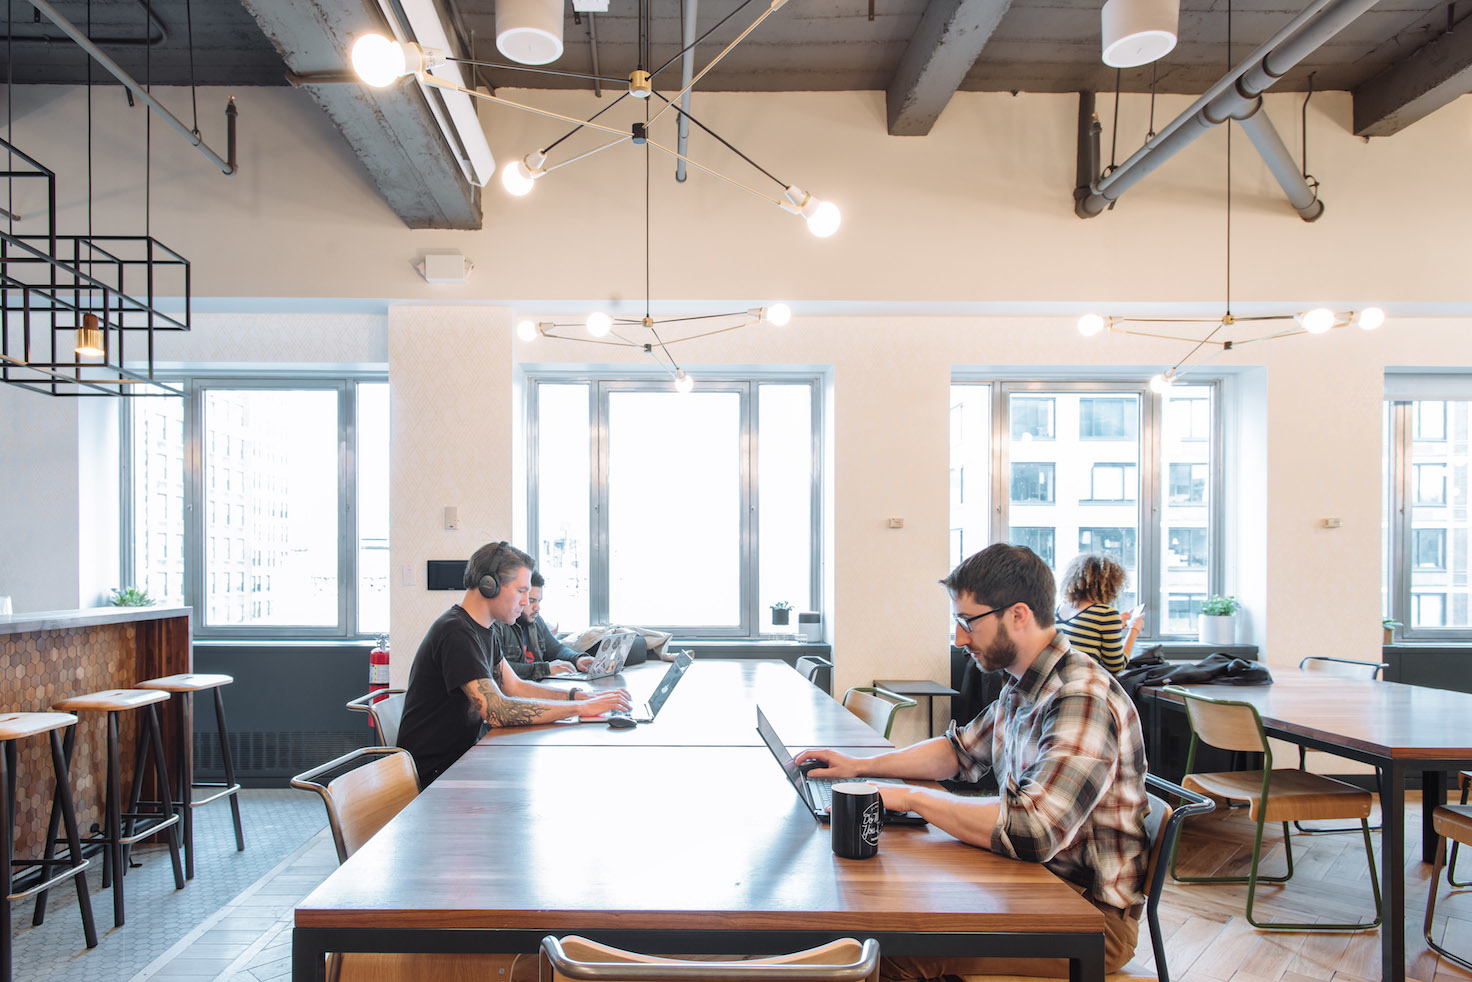 WeWork Montague St. in Brooklyn, NY 11201 ...